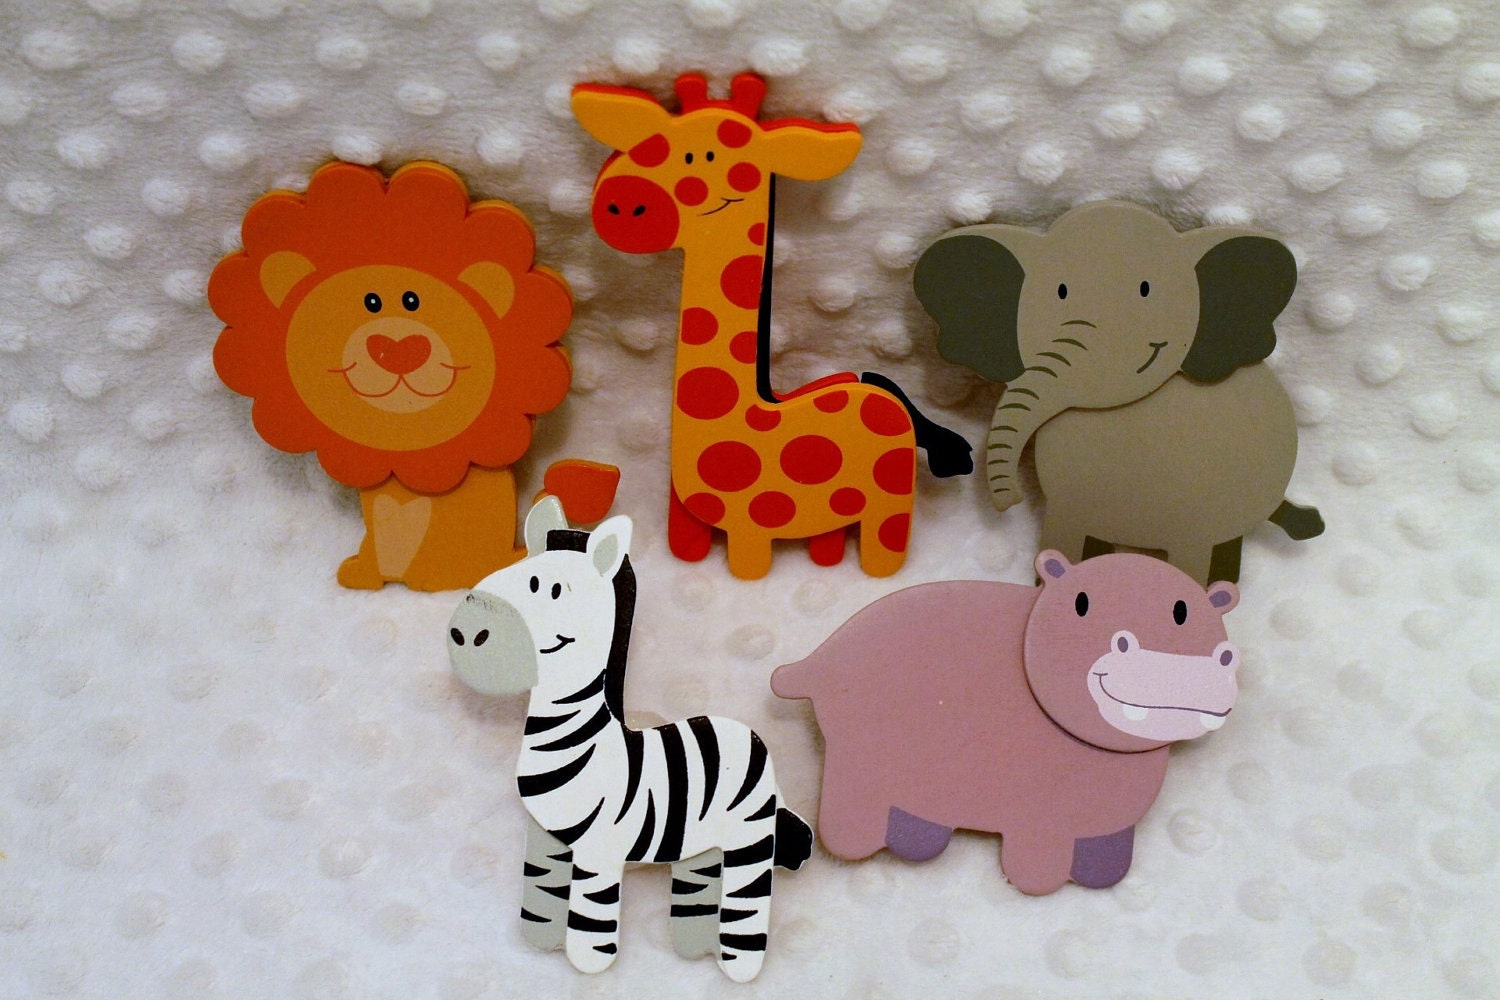 Popular items for Kids room decoration on Etsy